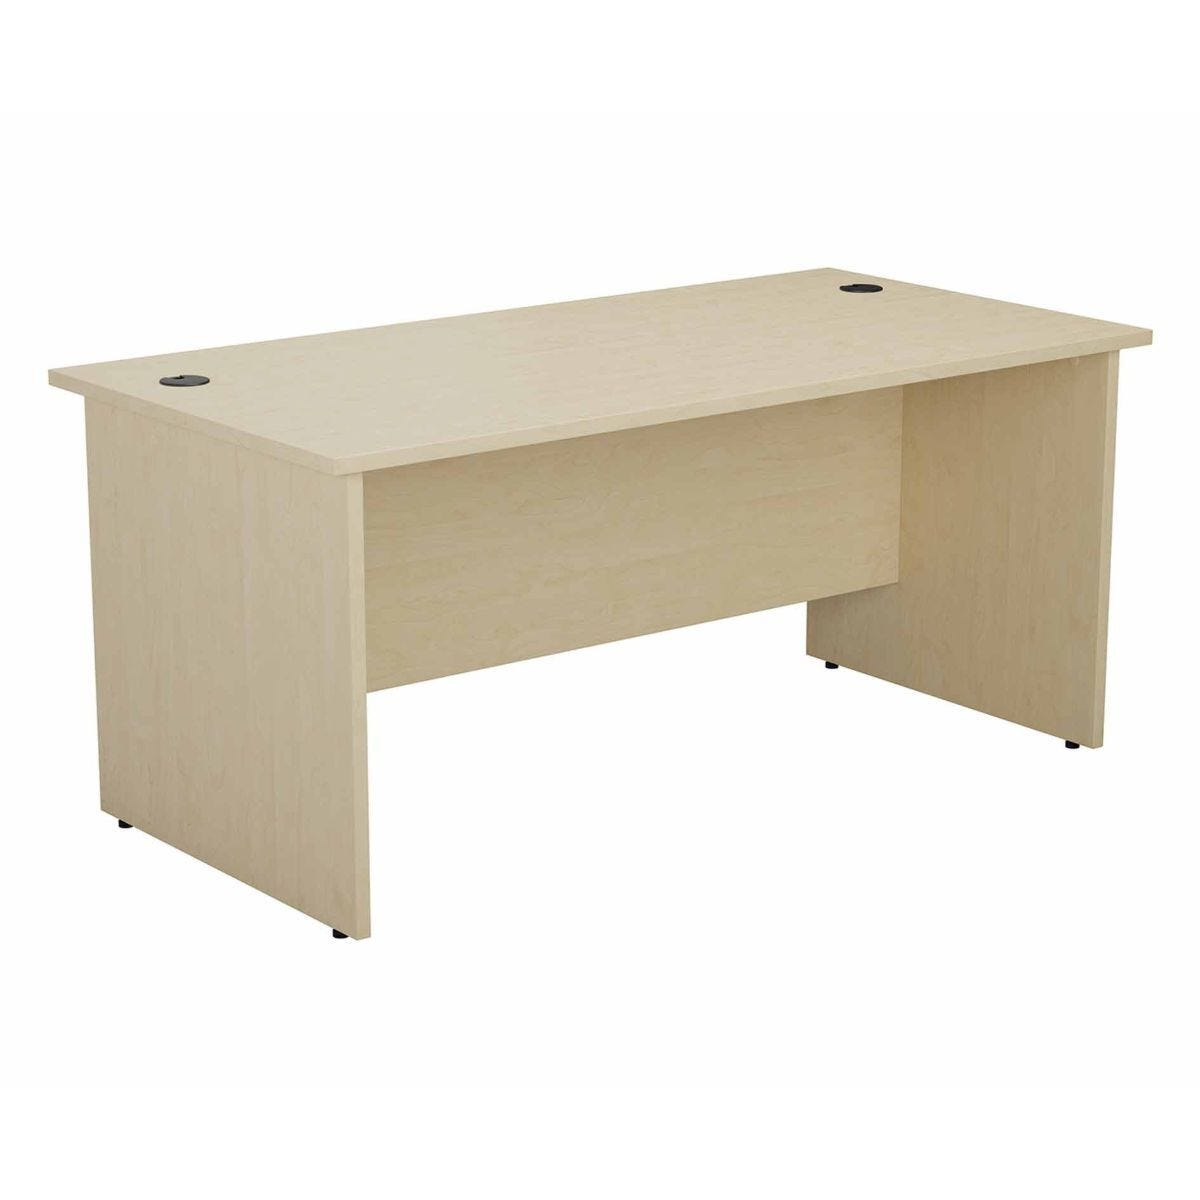 TC Office Rectangular Desk with Panel End Legs 1400 x 800mm Maple